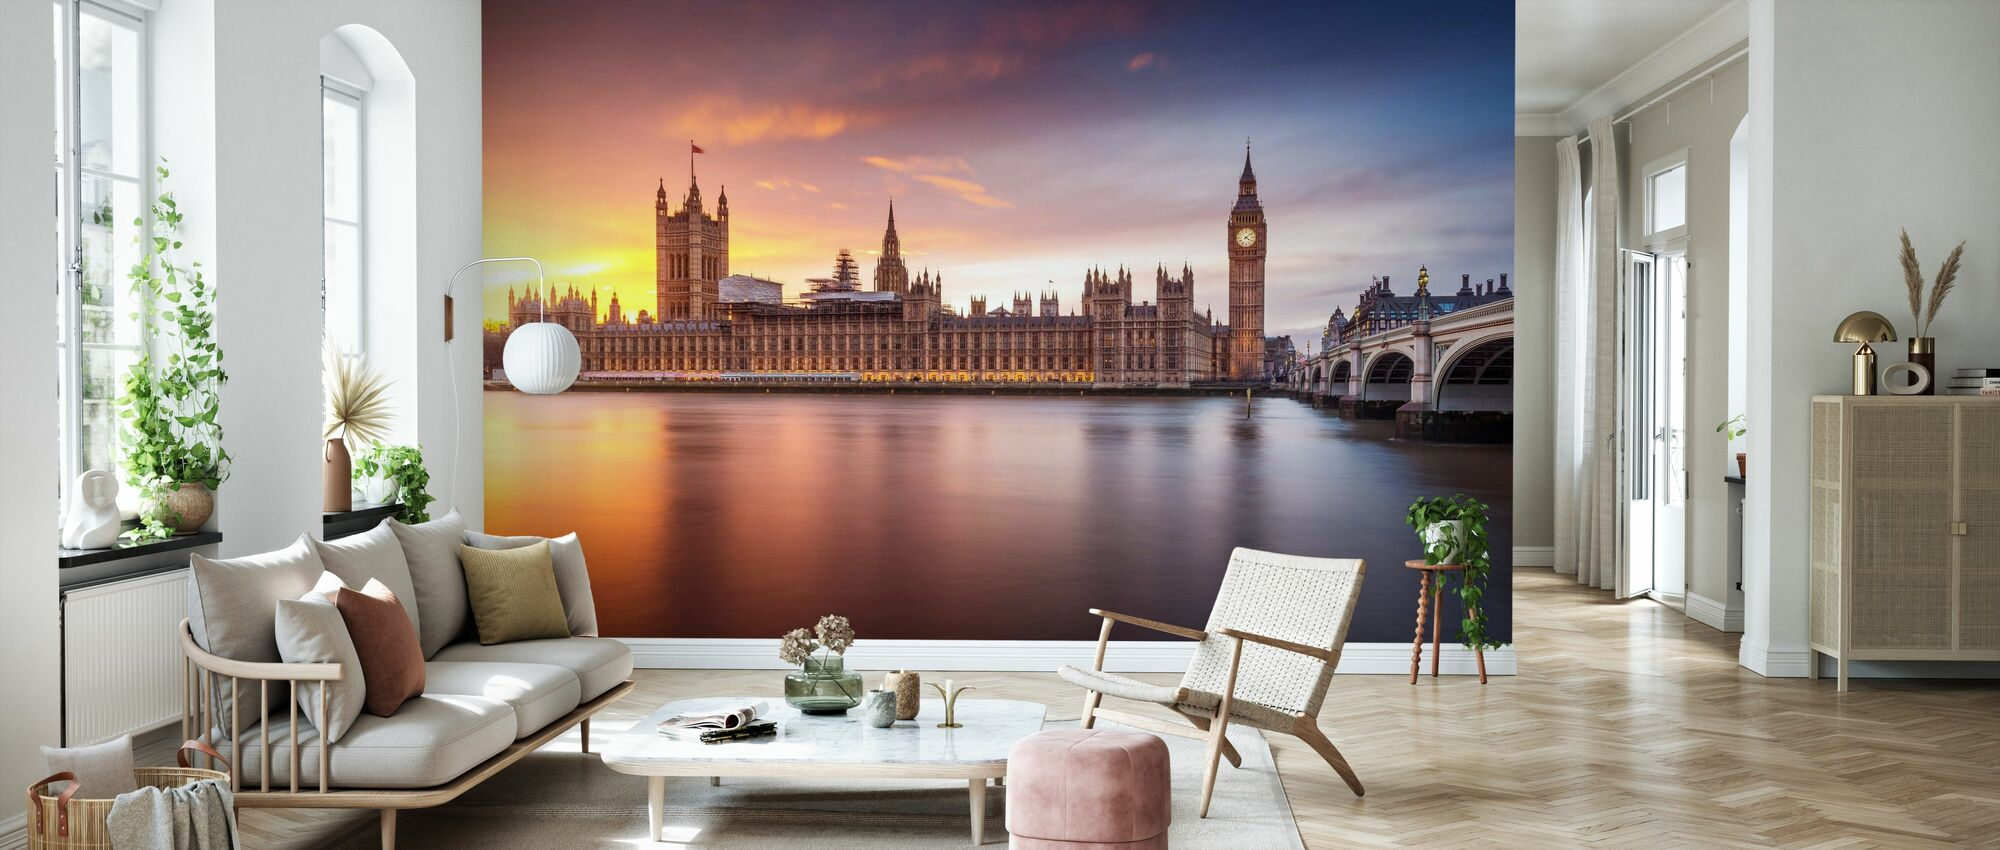 London Palace of Westminster Sunset - Wallpaper - Living Room